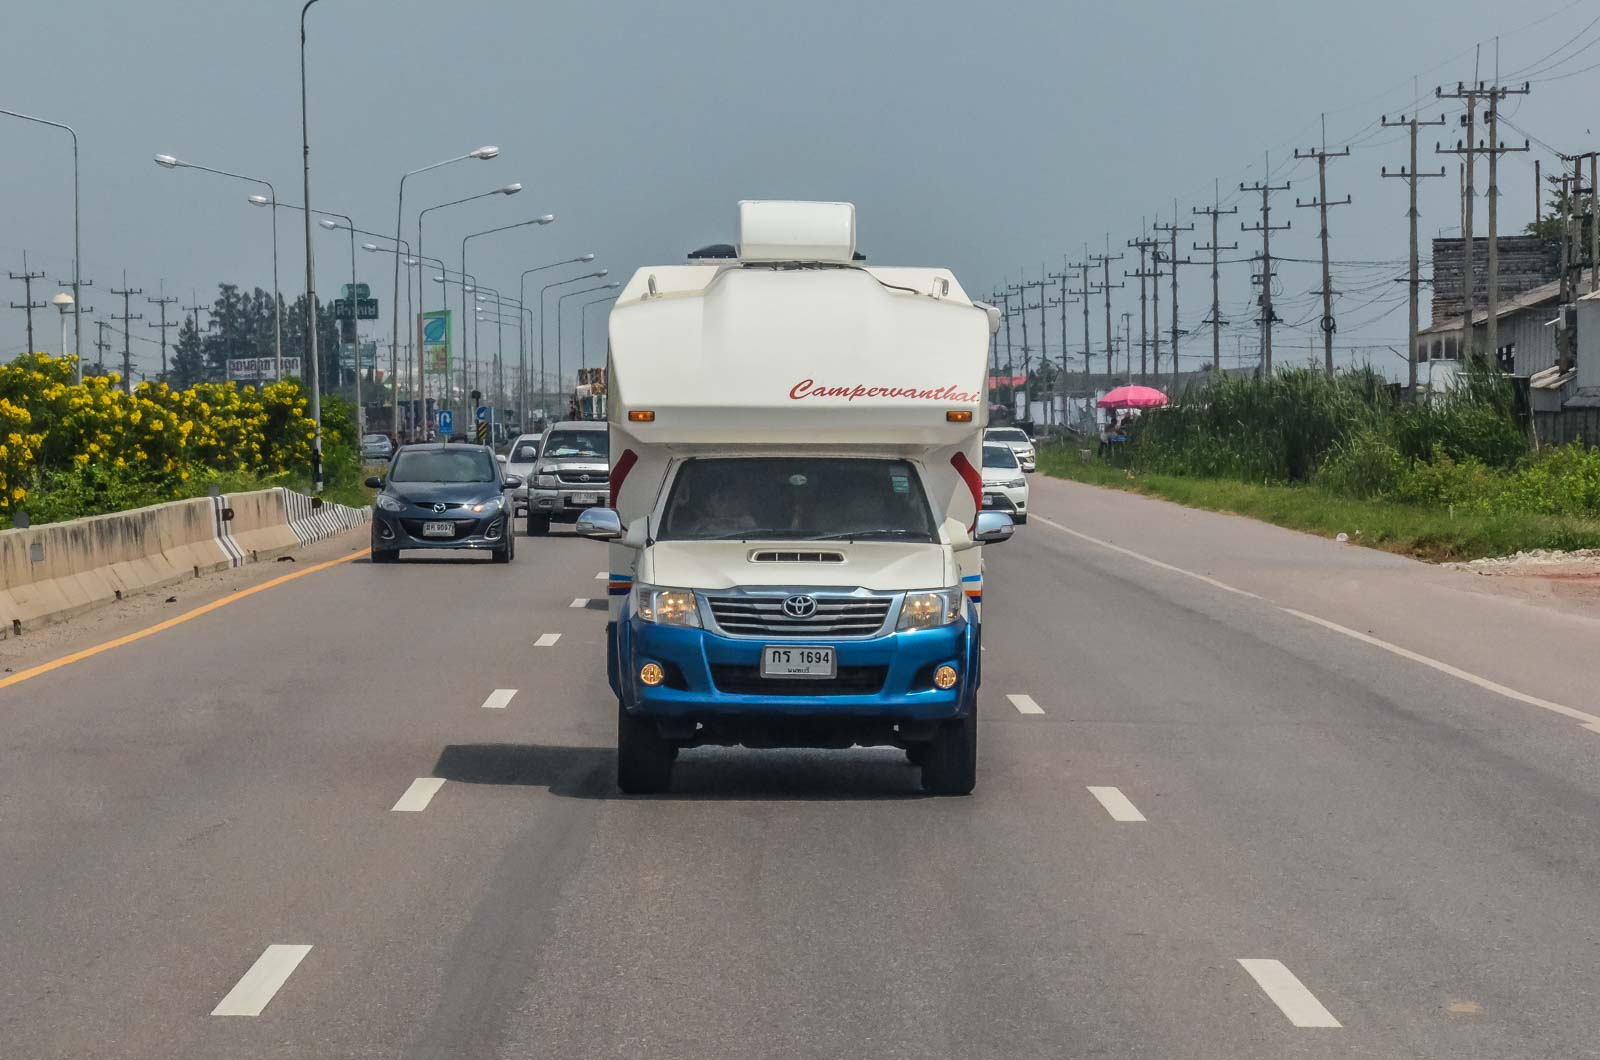 How to rent a campervan in Thailand?